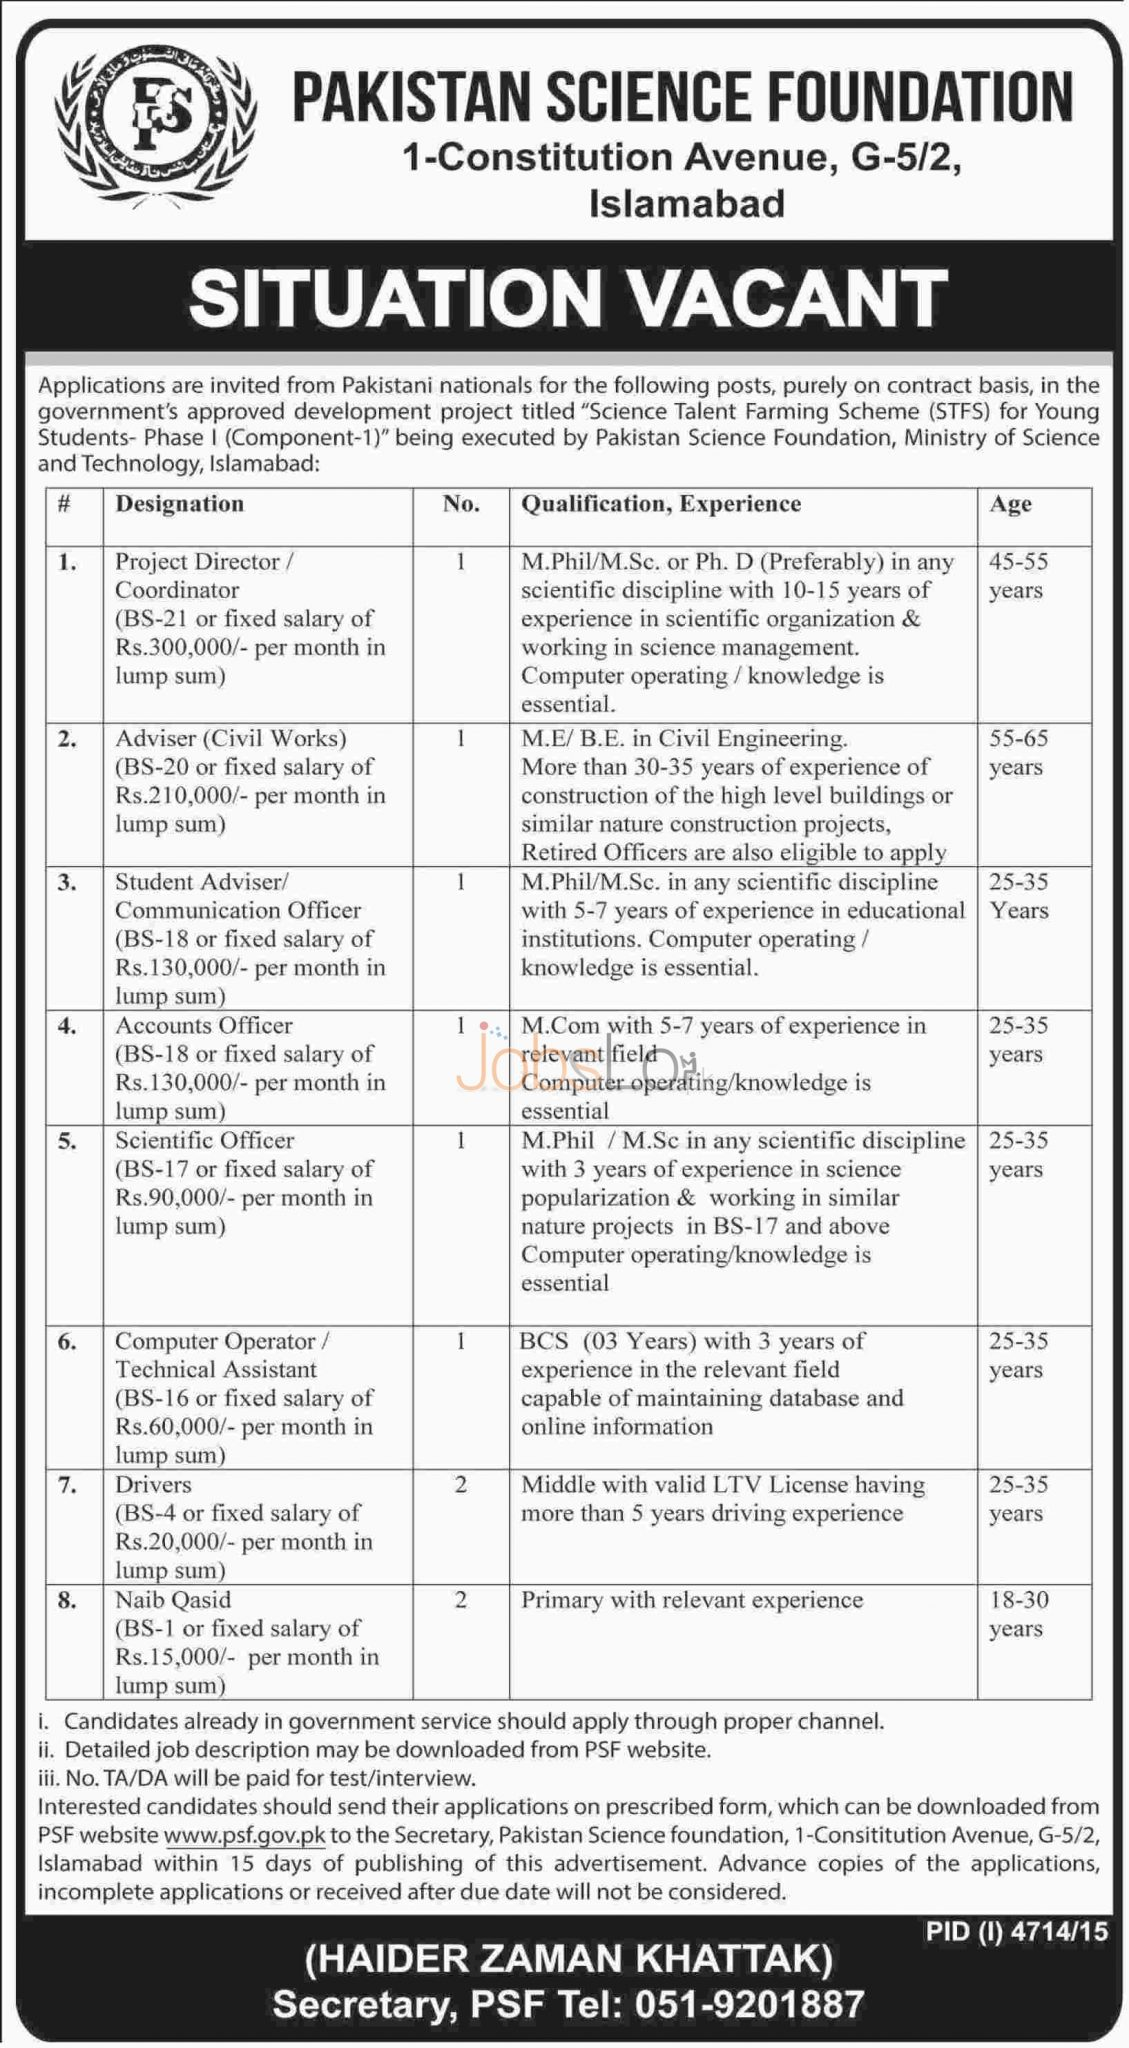 Rceruitment Offers in Pakistan Science Foundation 10 March 2016 in Islamabad For Project Director, Accounts Officer Latest